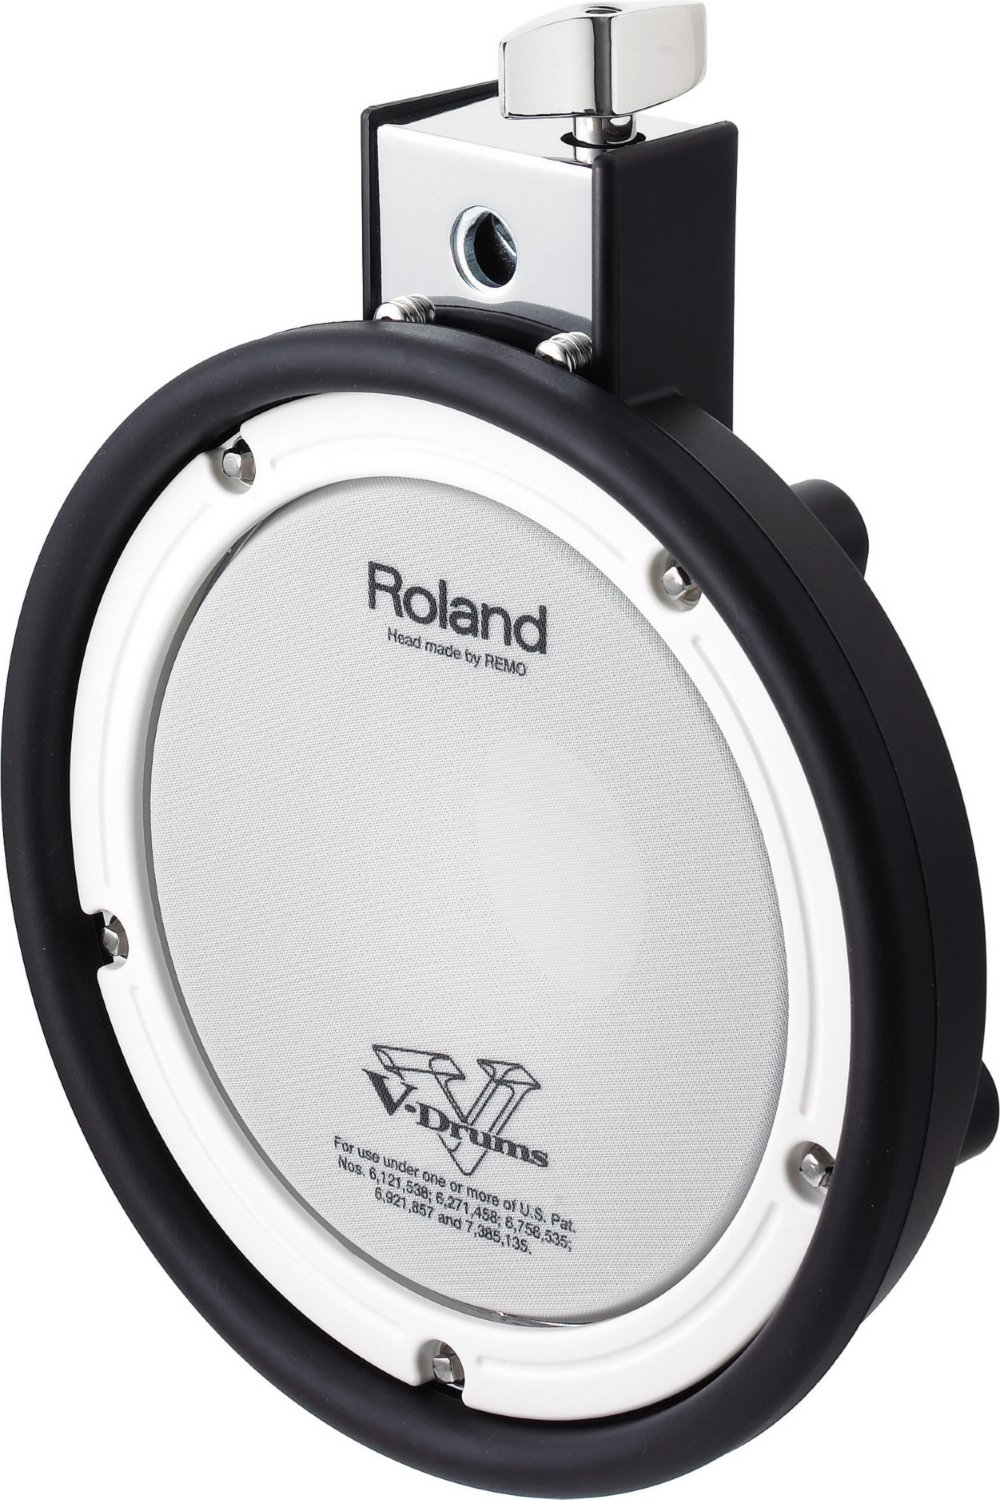 Roland Electronic Drum Pad, 10-inch (PDX-100)